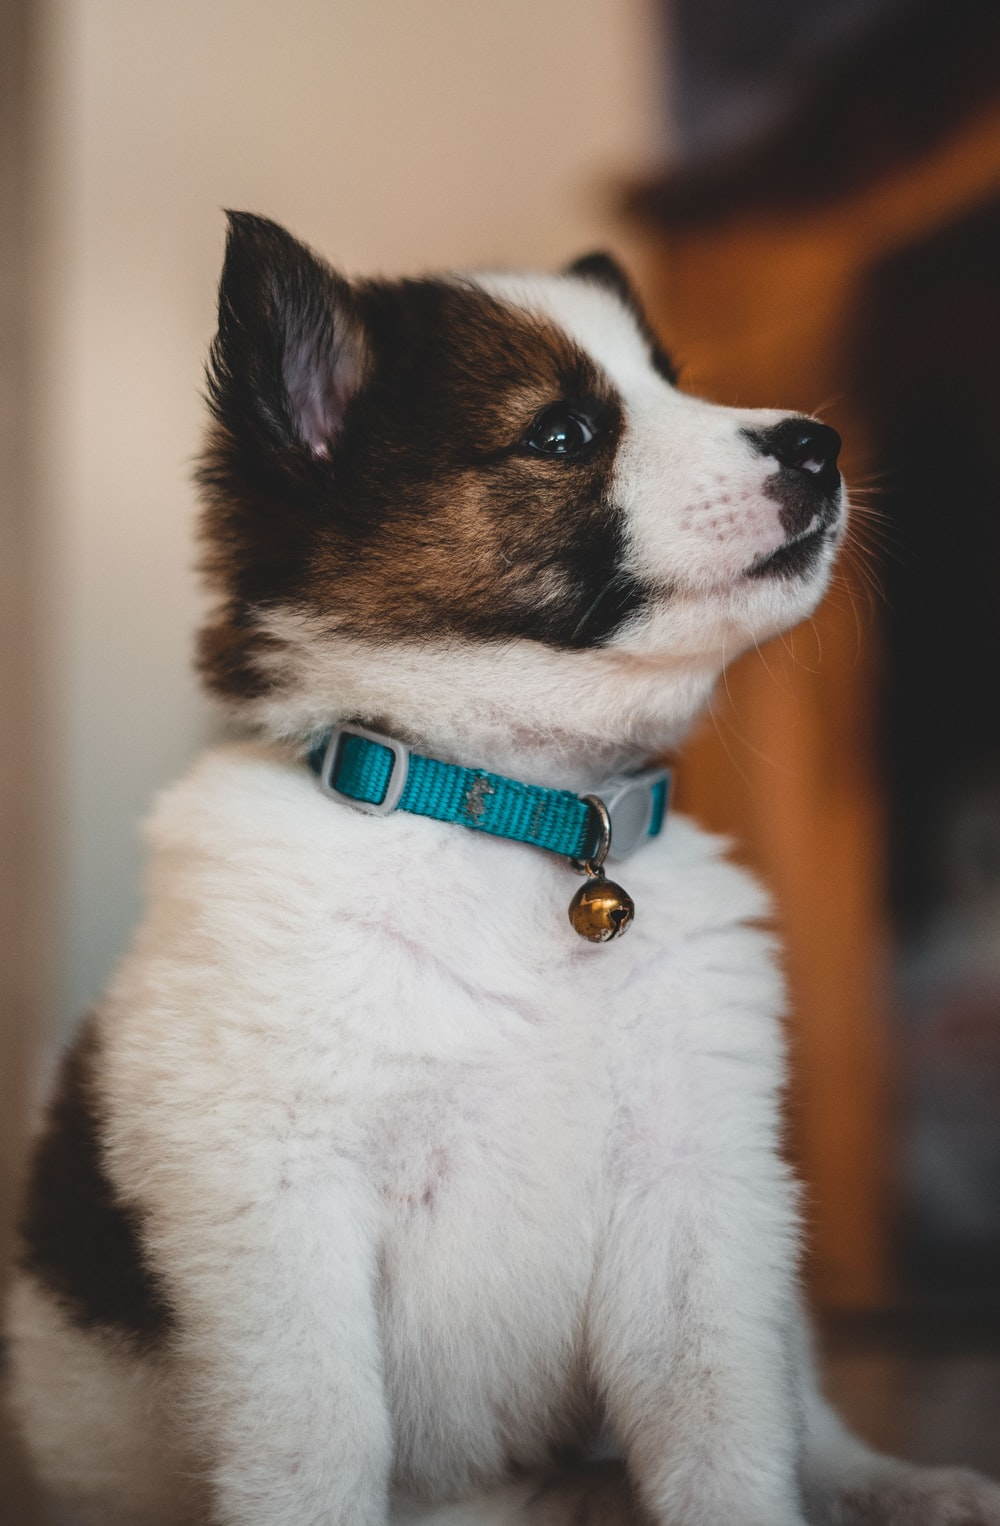 short-coated white and brown puppy wearing blue collar with bell